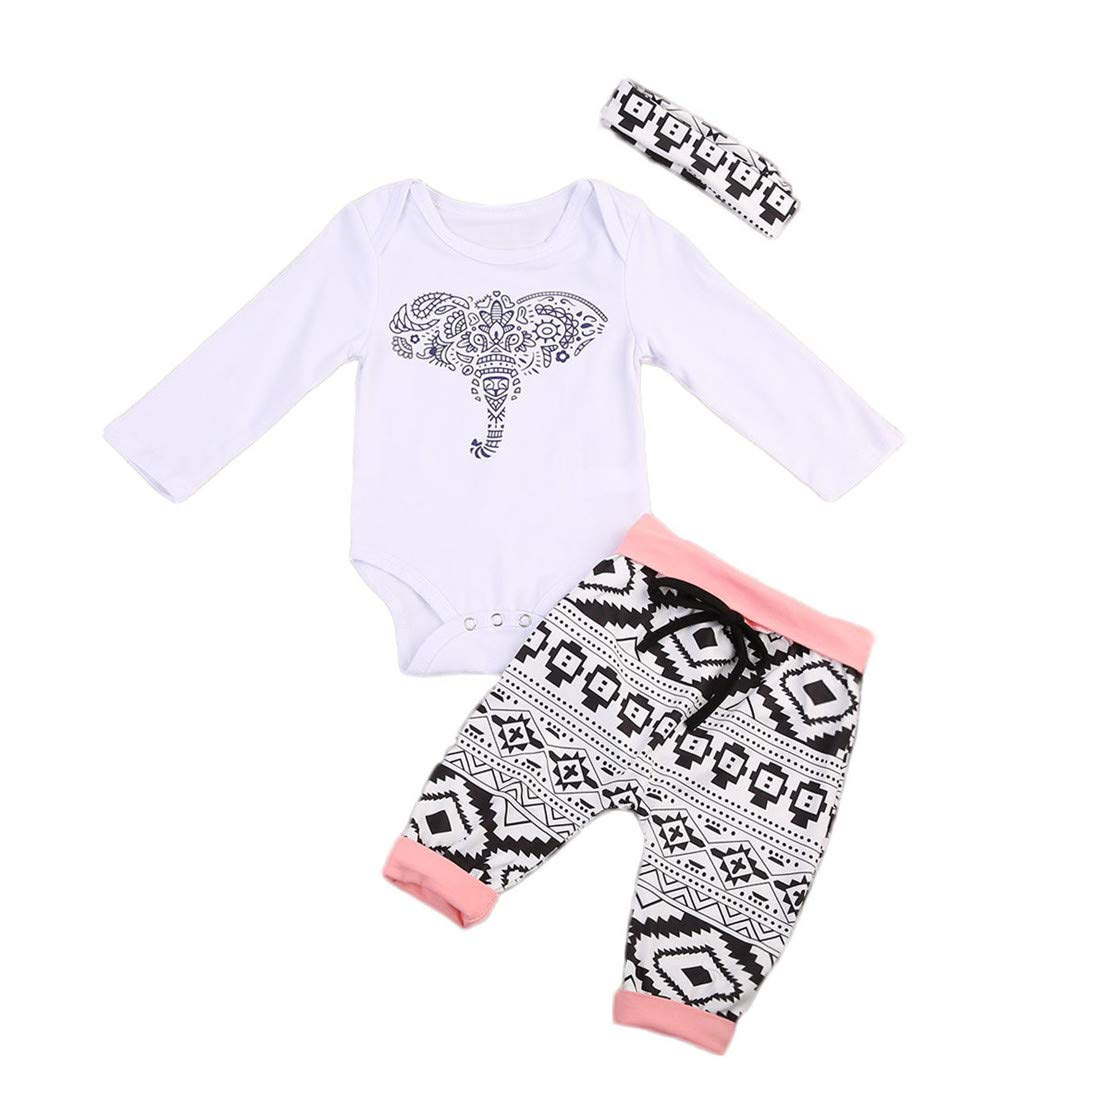 3Pcs/Set Newborn Baby Girl Boy Long Sleeve Elephant Bodysuit + Geometric Pants + Headband Outfit Clothes